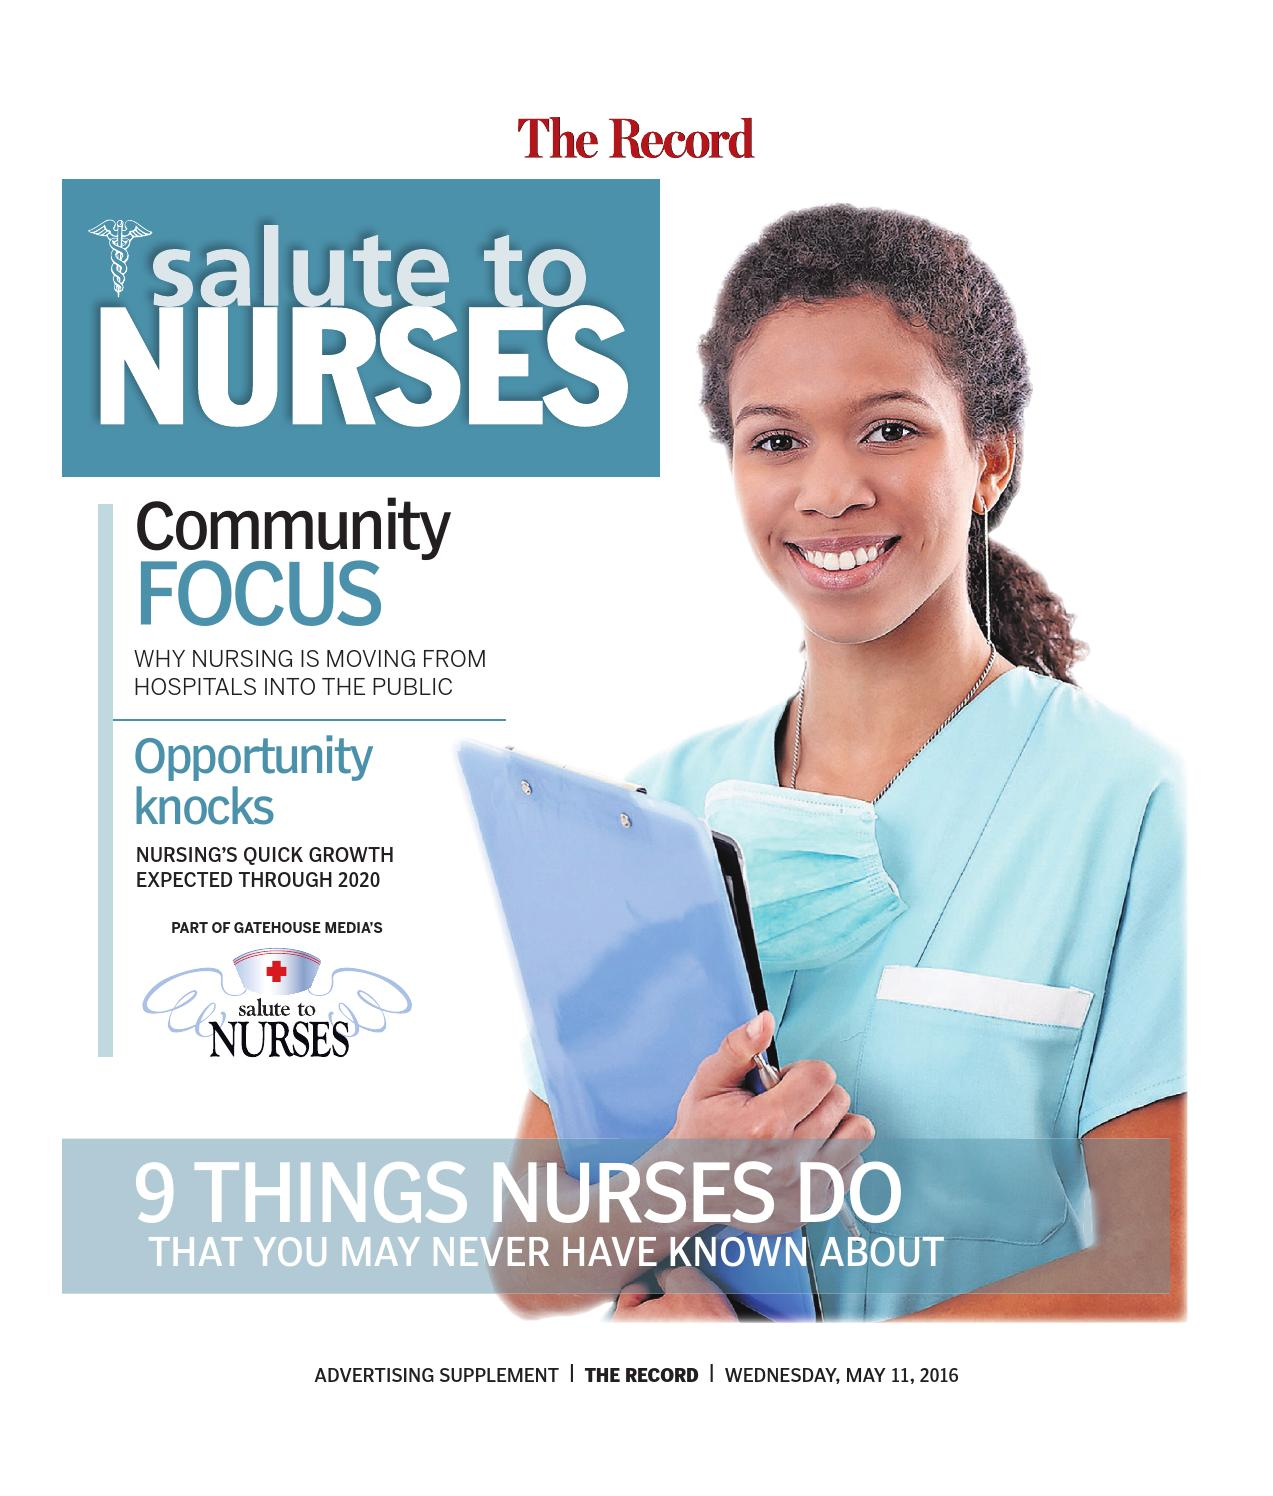 violence against nursing workplace health and social care essay Compassion fatigue is specific to workers in social services that work directly with  victims  40 to 50% of teachers burnout within the first five years and nursing  faces a chronic  reid et al found that in the mental health field workers  experienced  or frequently engage in aggressive, stressful, or violent behaviors  are more.